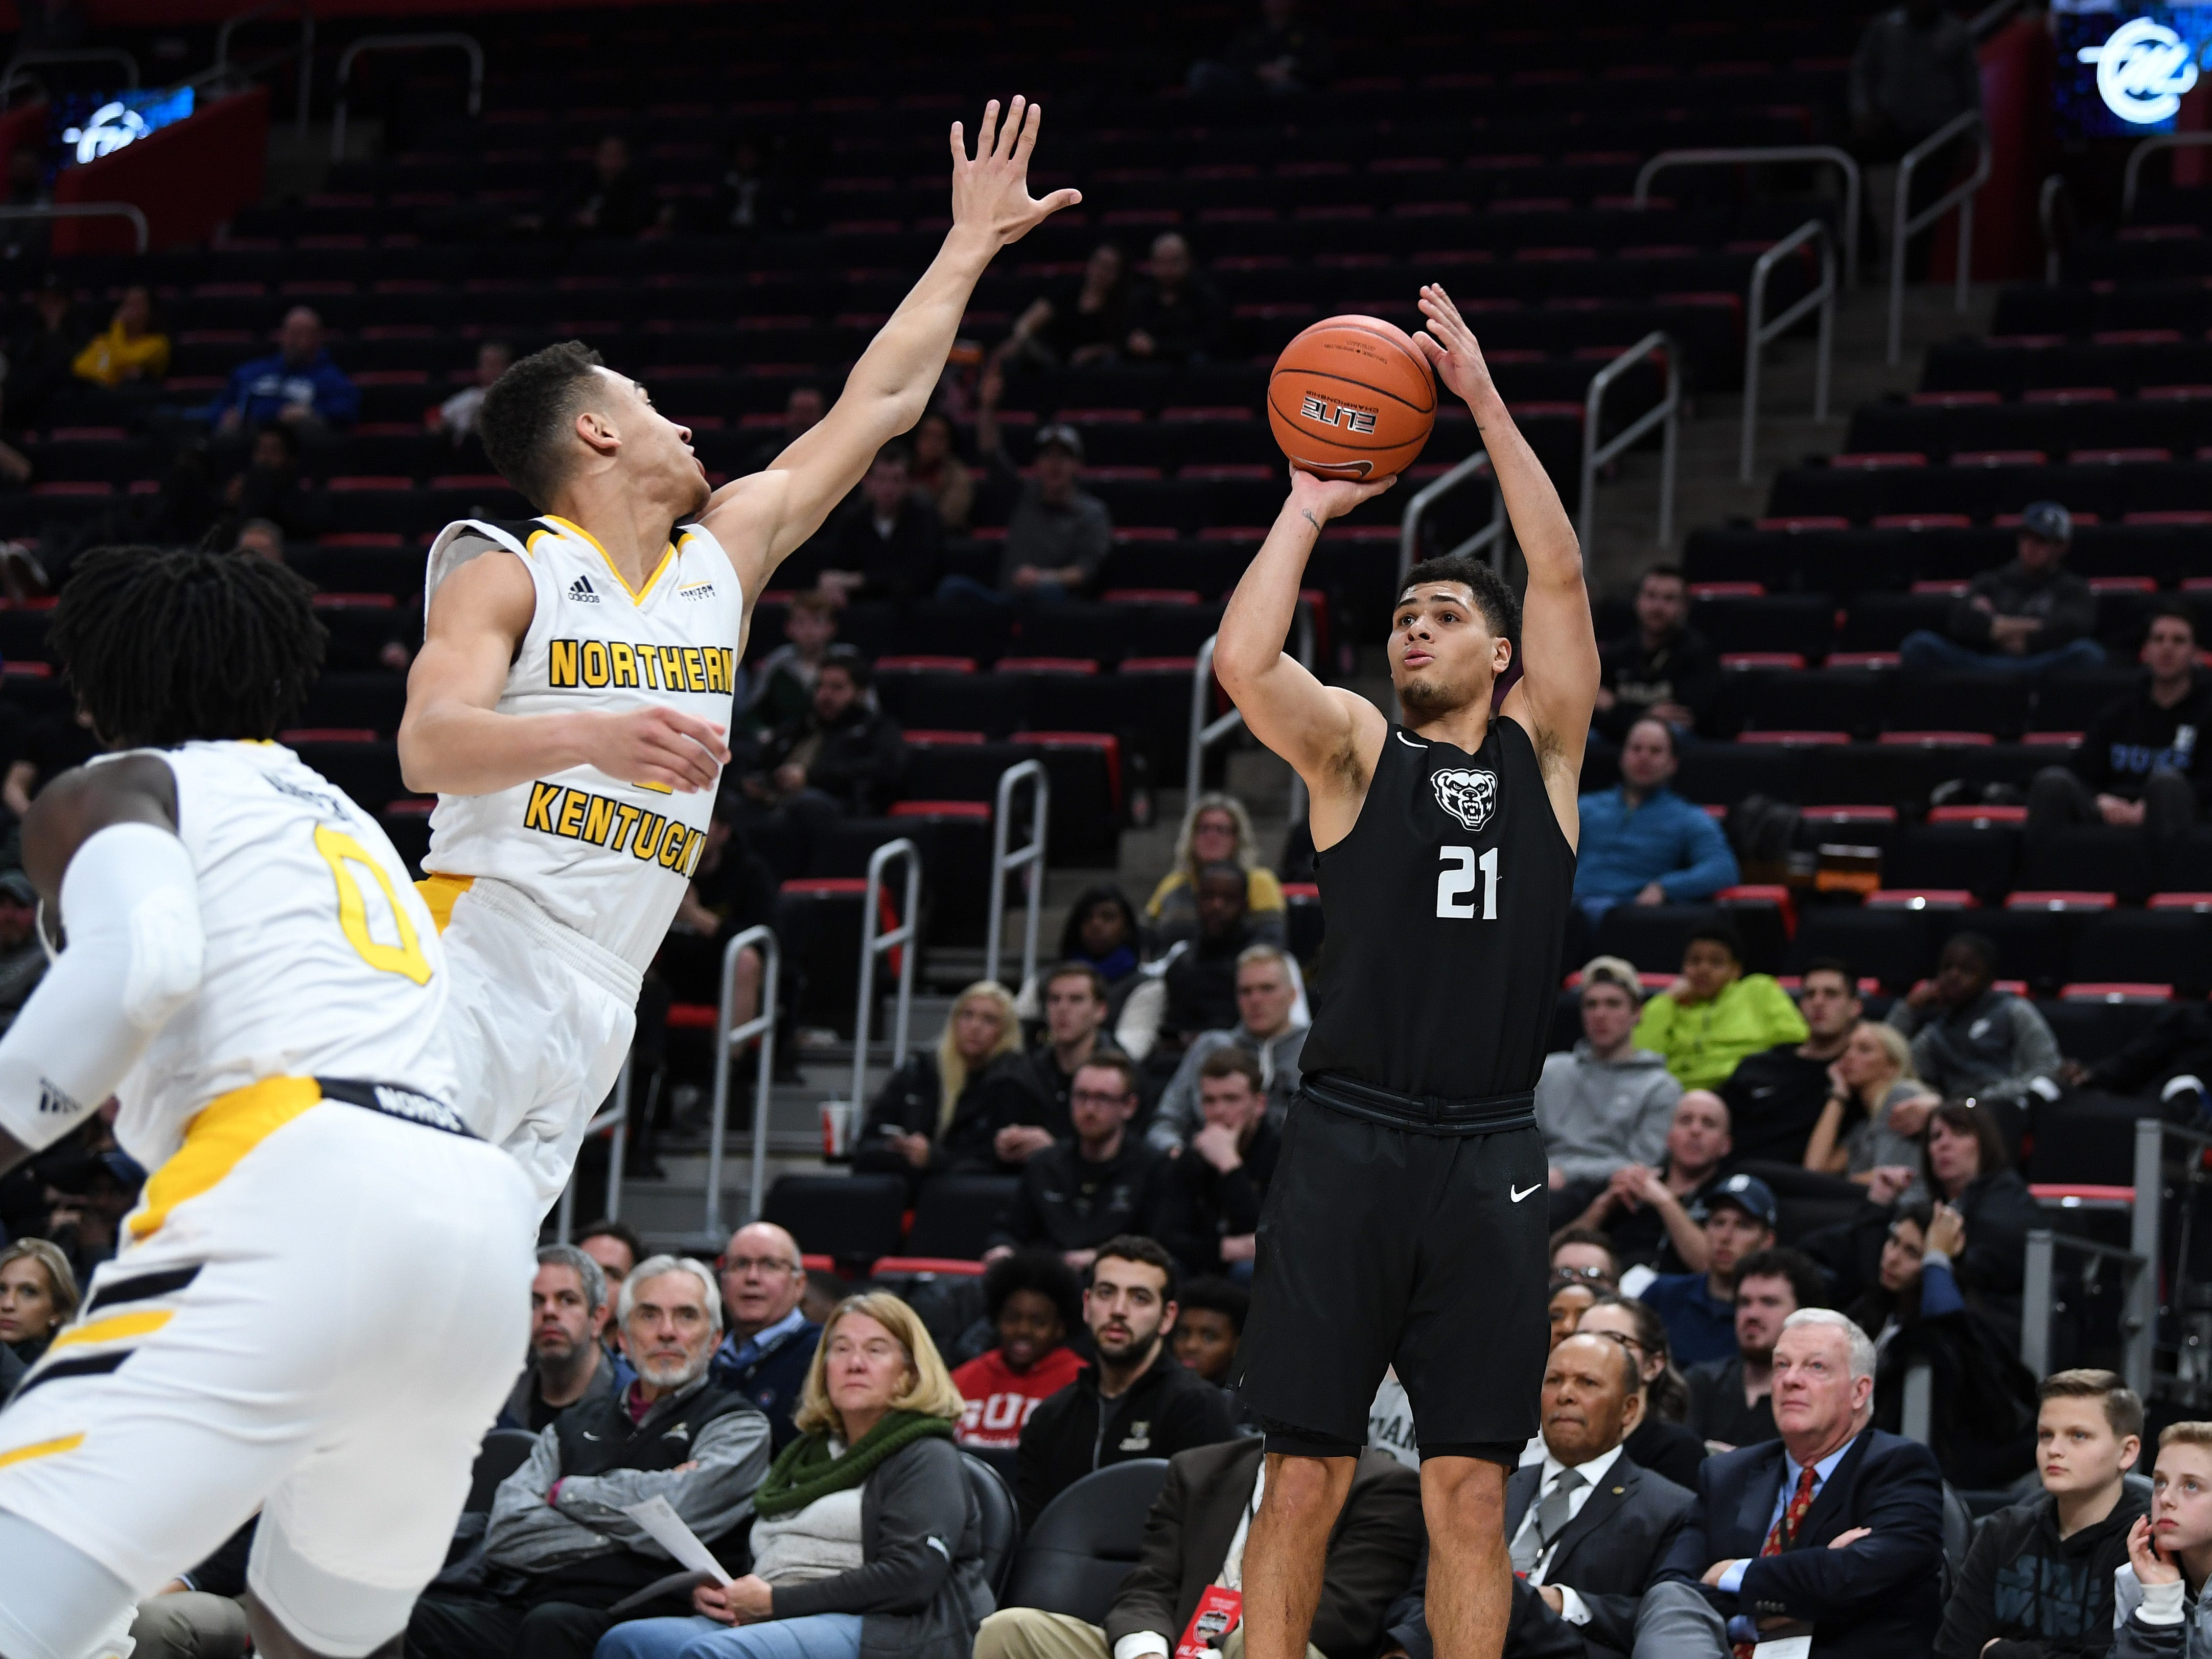 Oakland Golden Grizzlies guard Jaevin Cumberland shoots against the Northern Kentucky Norse during the first half of their Horizon League semifinal game at Little Caesars Arena in Detroit, Monday, Mar. 11, 2019.